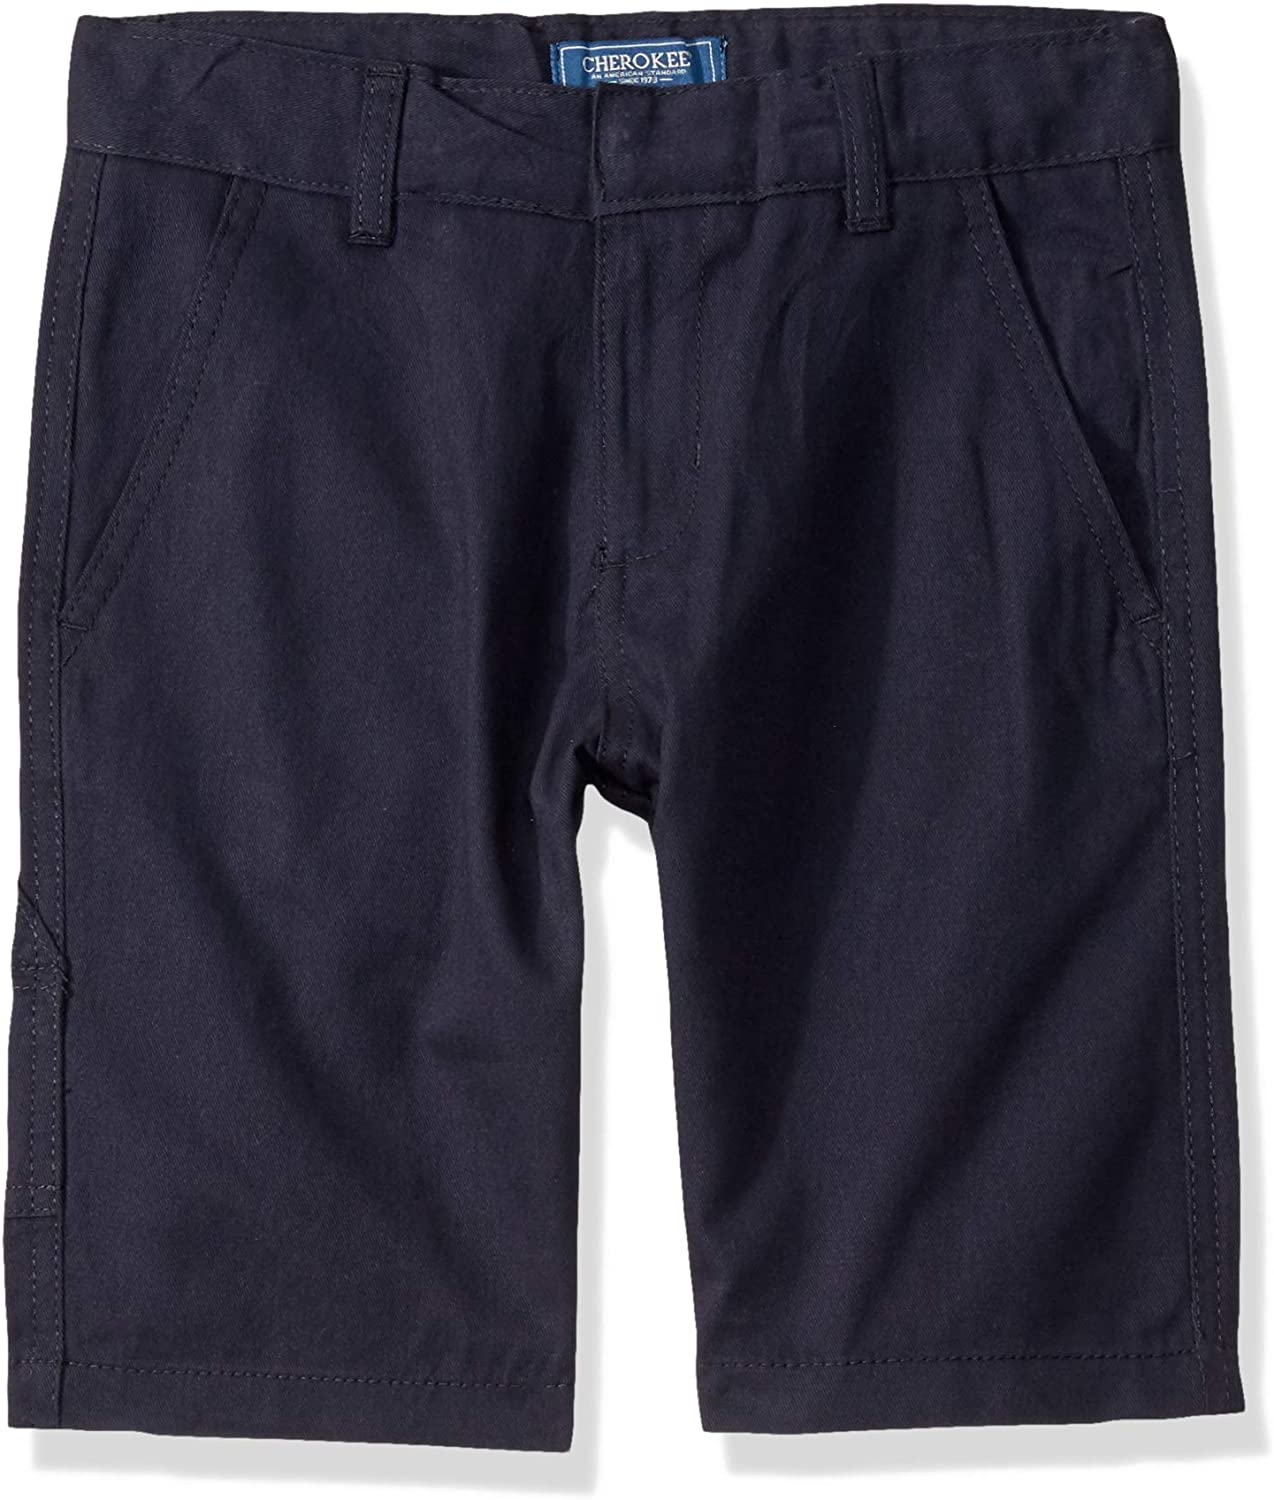 Cherokee School Uniforms Boys' Classic Fit Twill Short with Carpenter Pocket